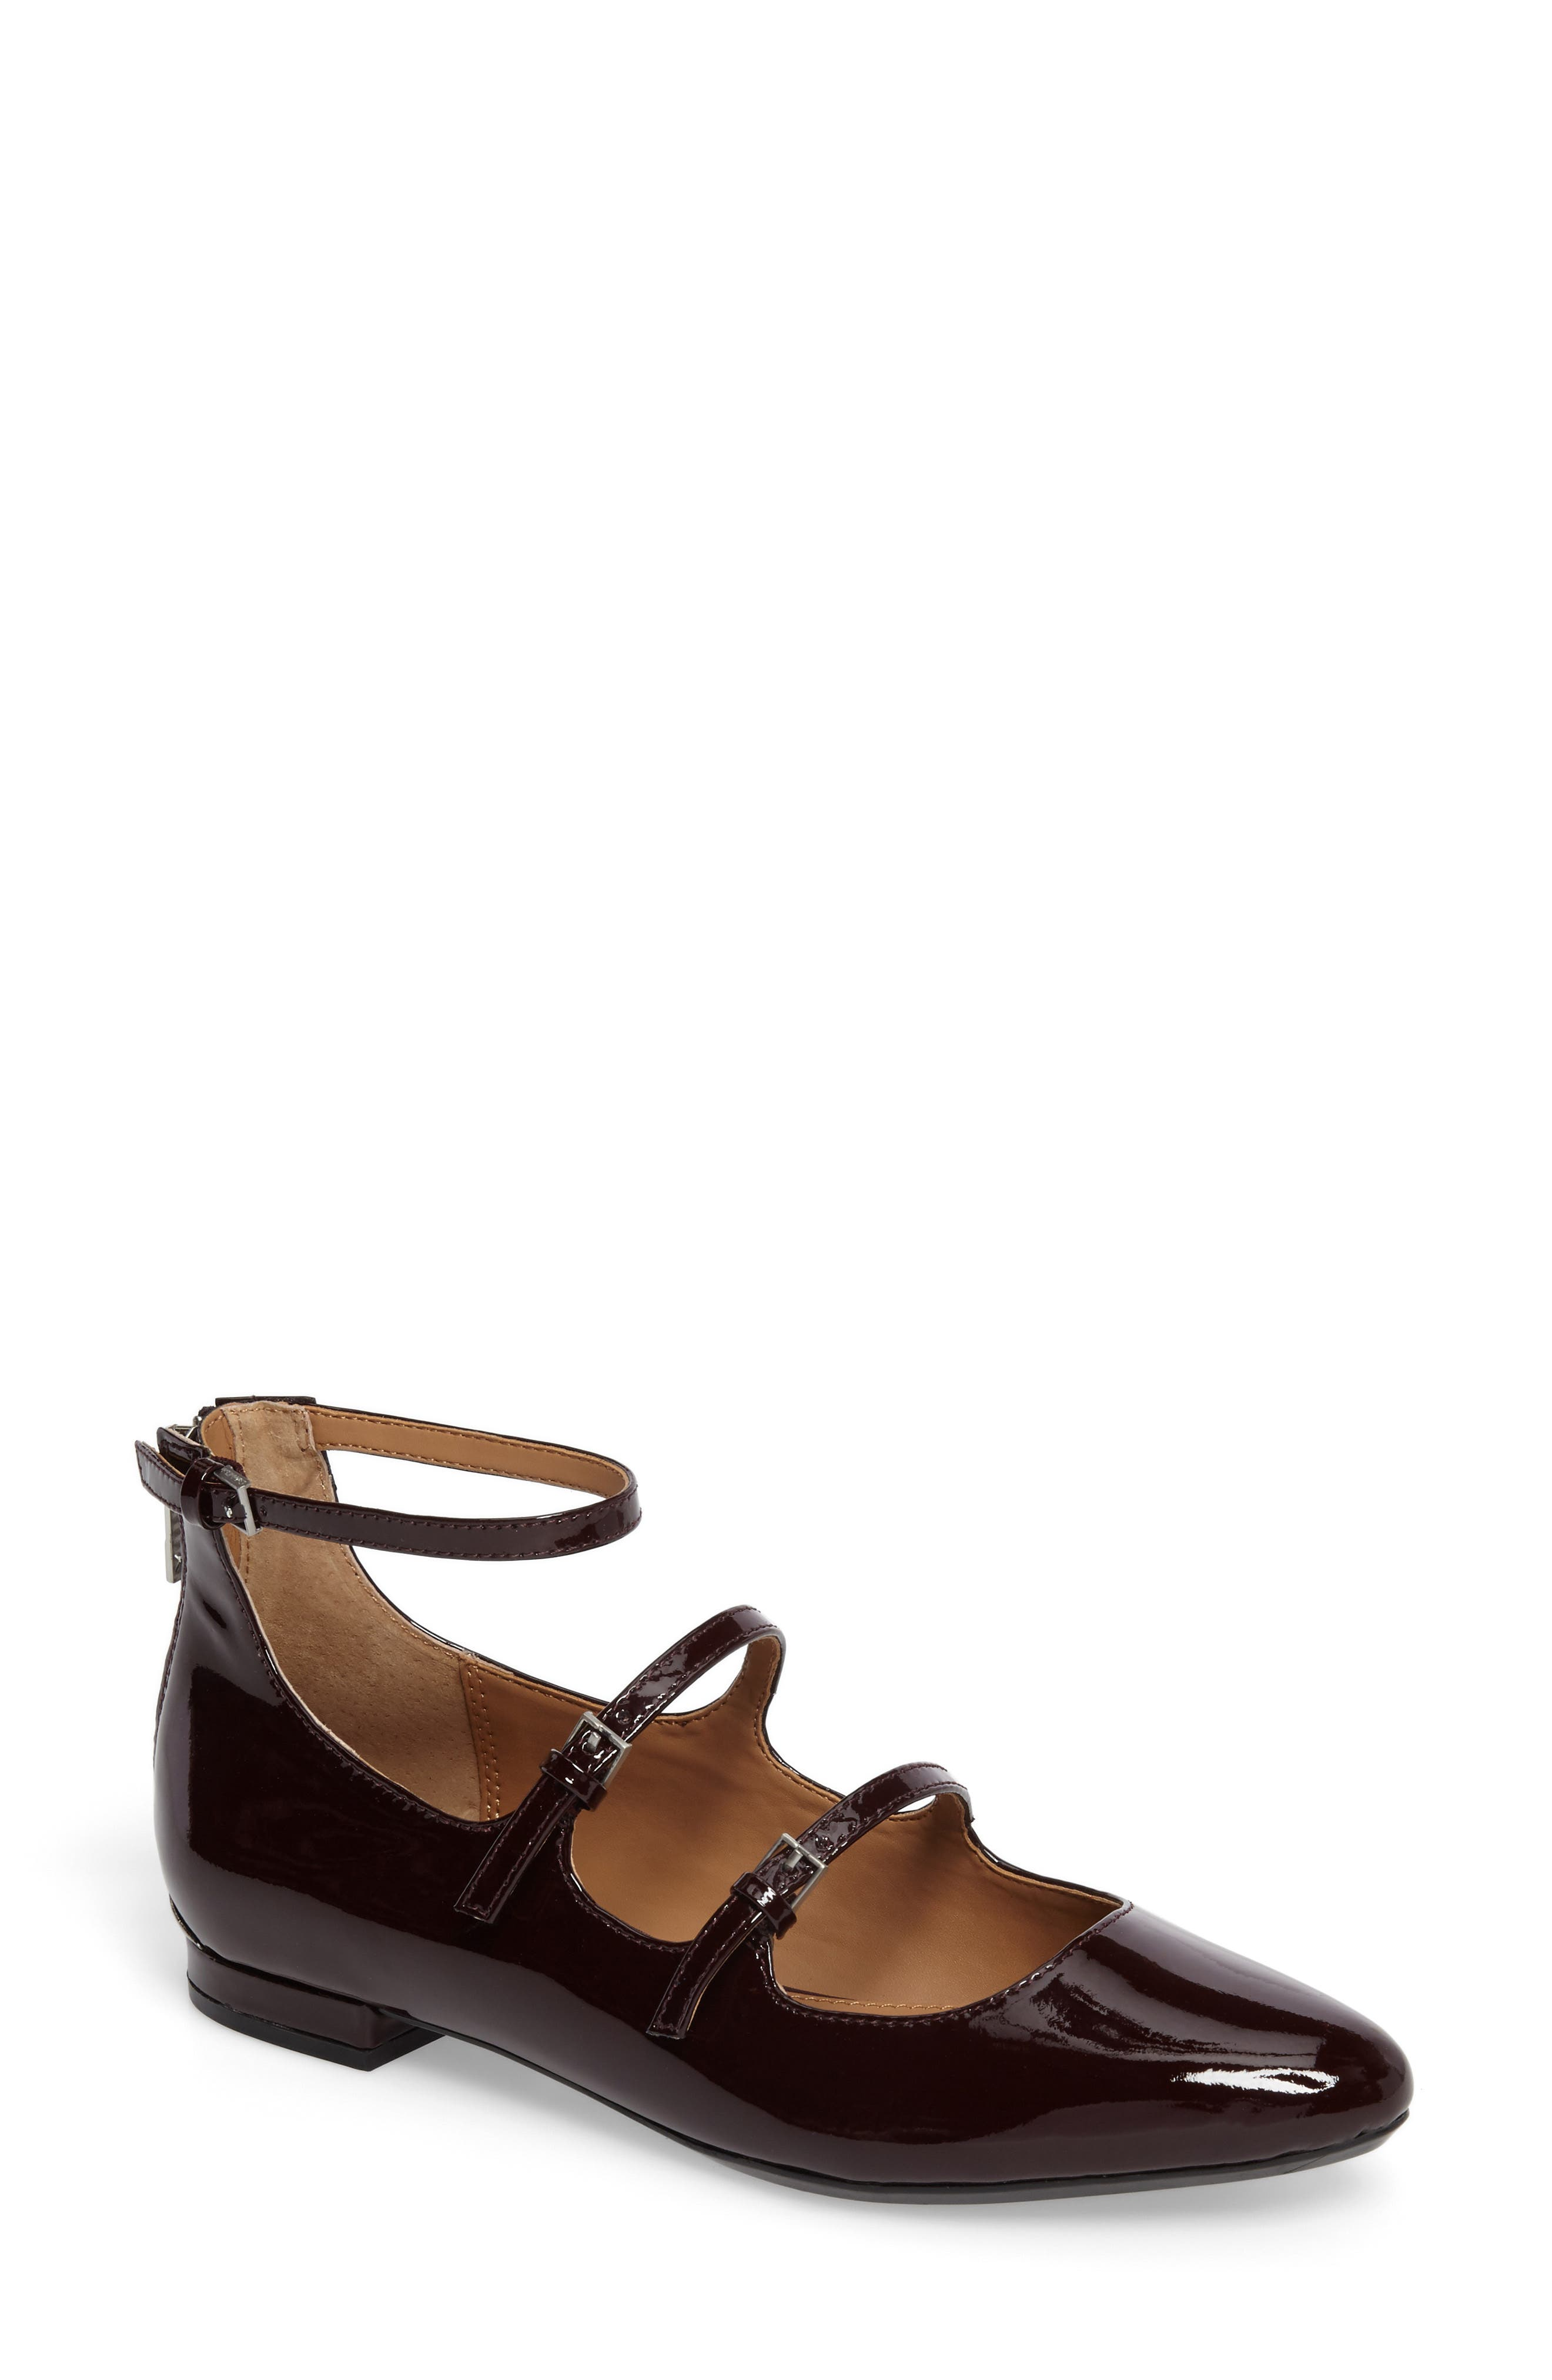 Alternate Image 1 Selected - Calvin Klein Gavinia Strappy Flat (Women)